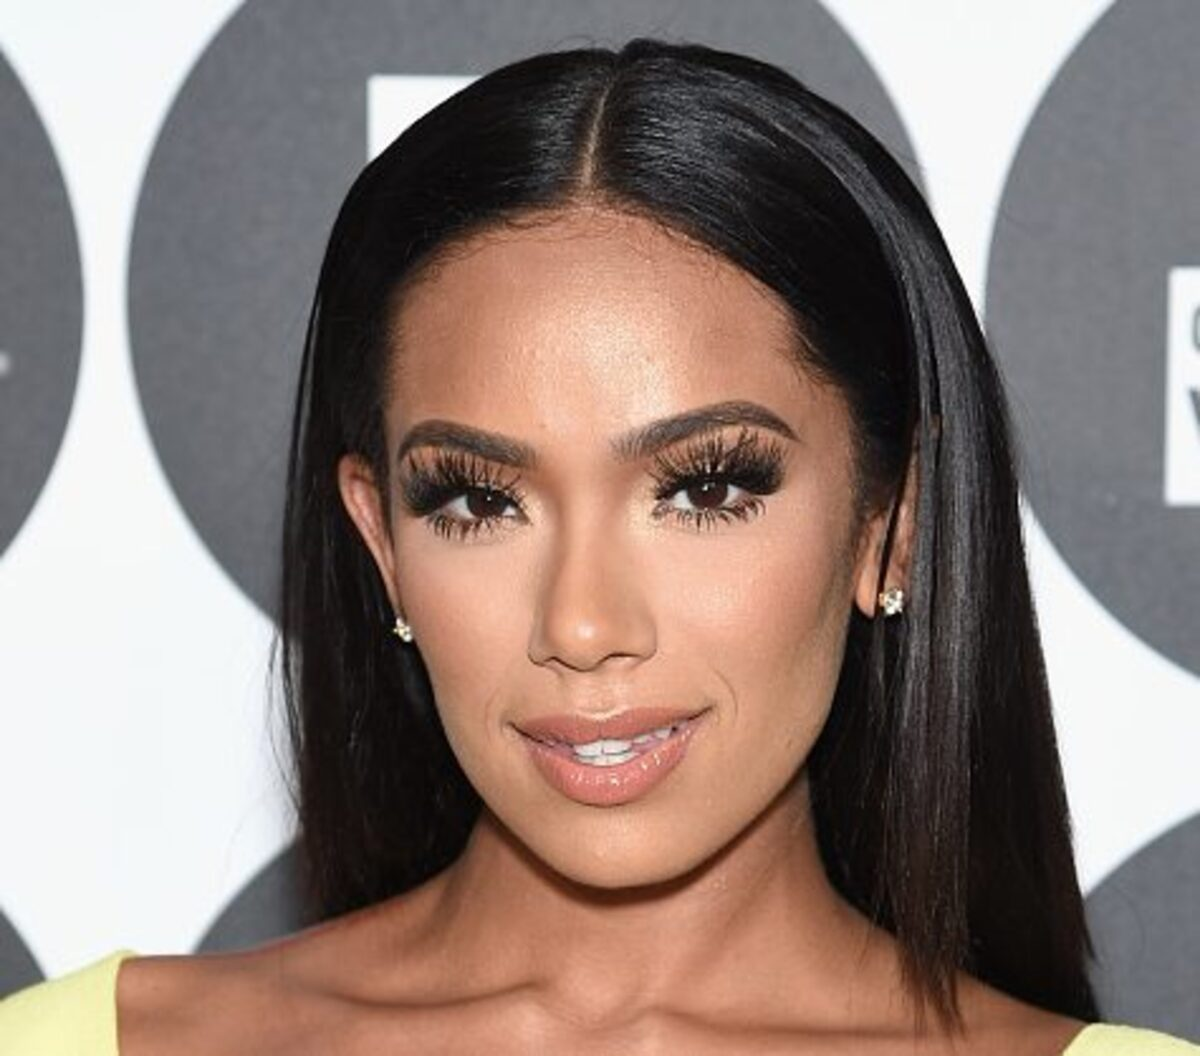 Erica Mena Flaunts Her Toned And Slimmed Down Figure In This Black Fashion Nova Outfit